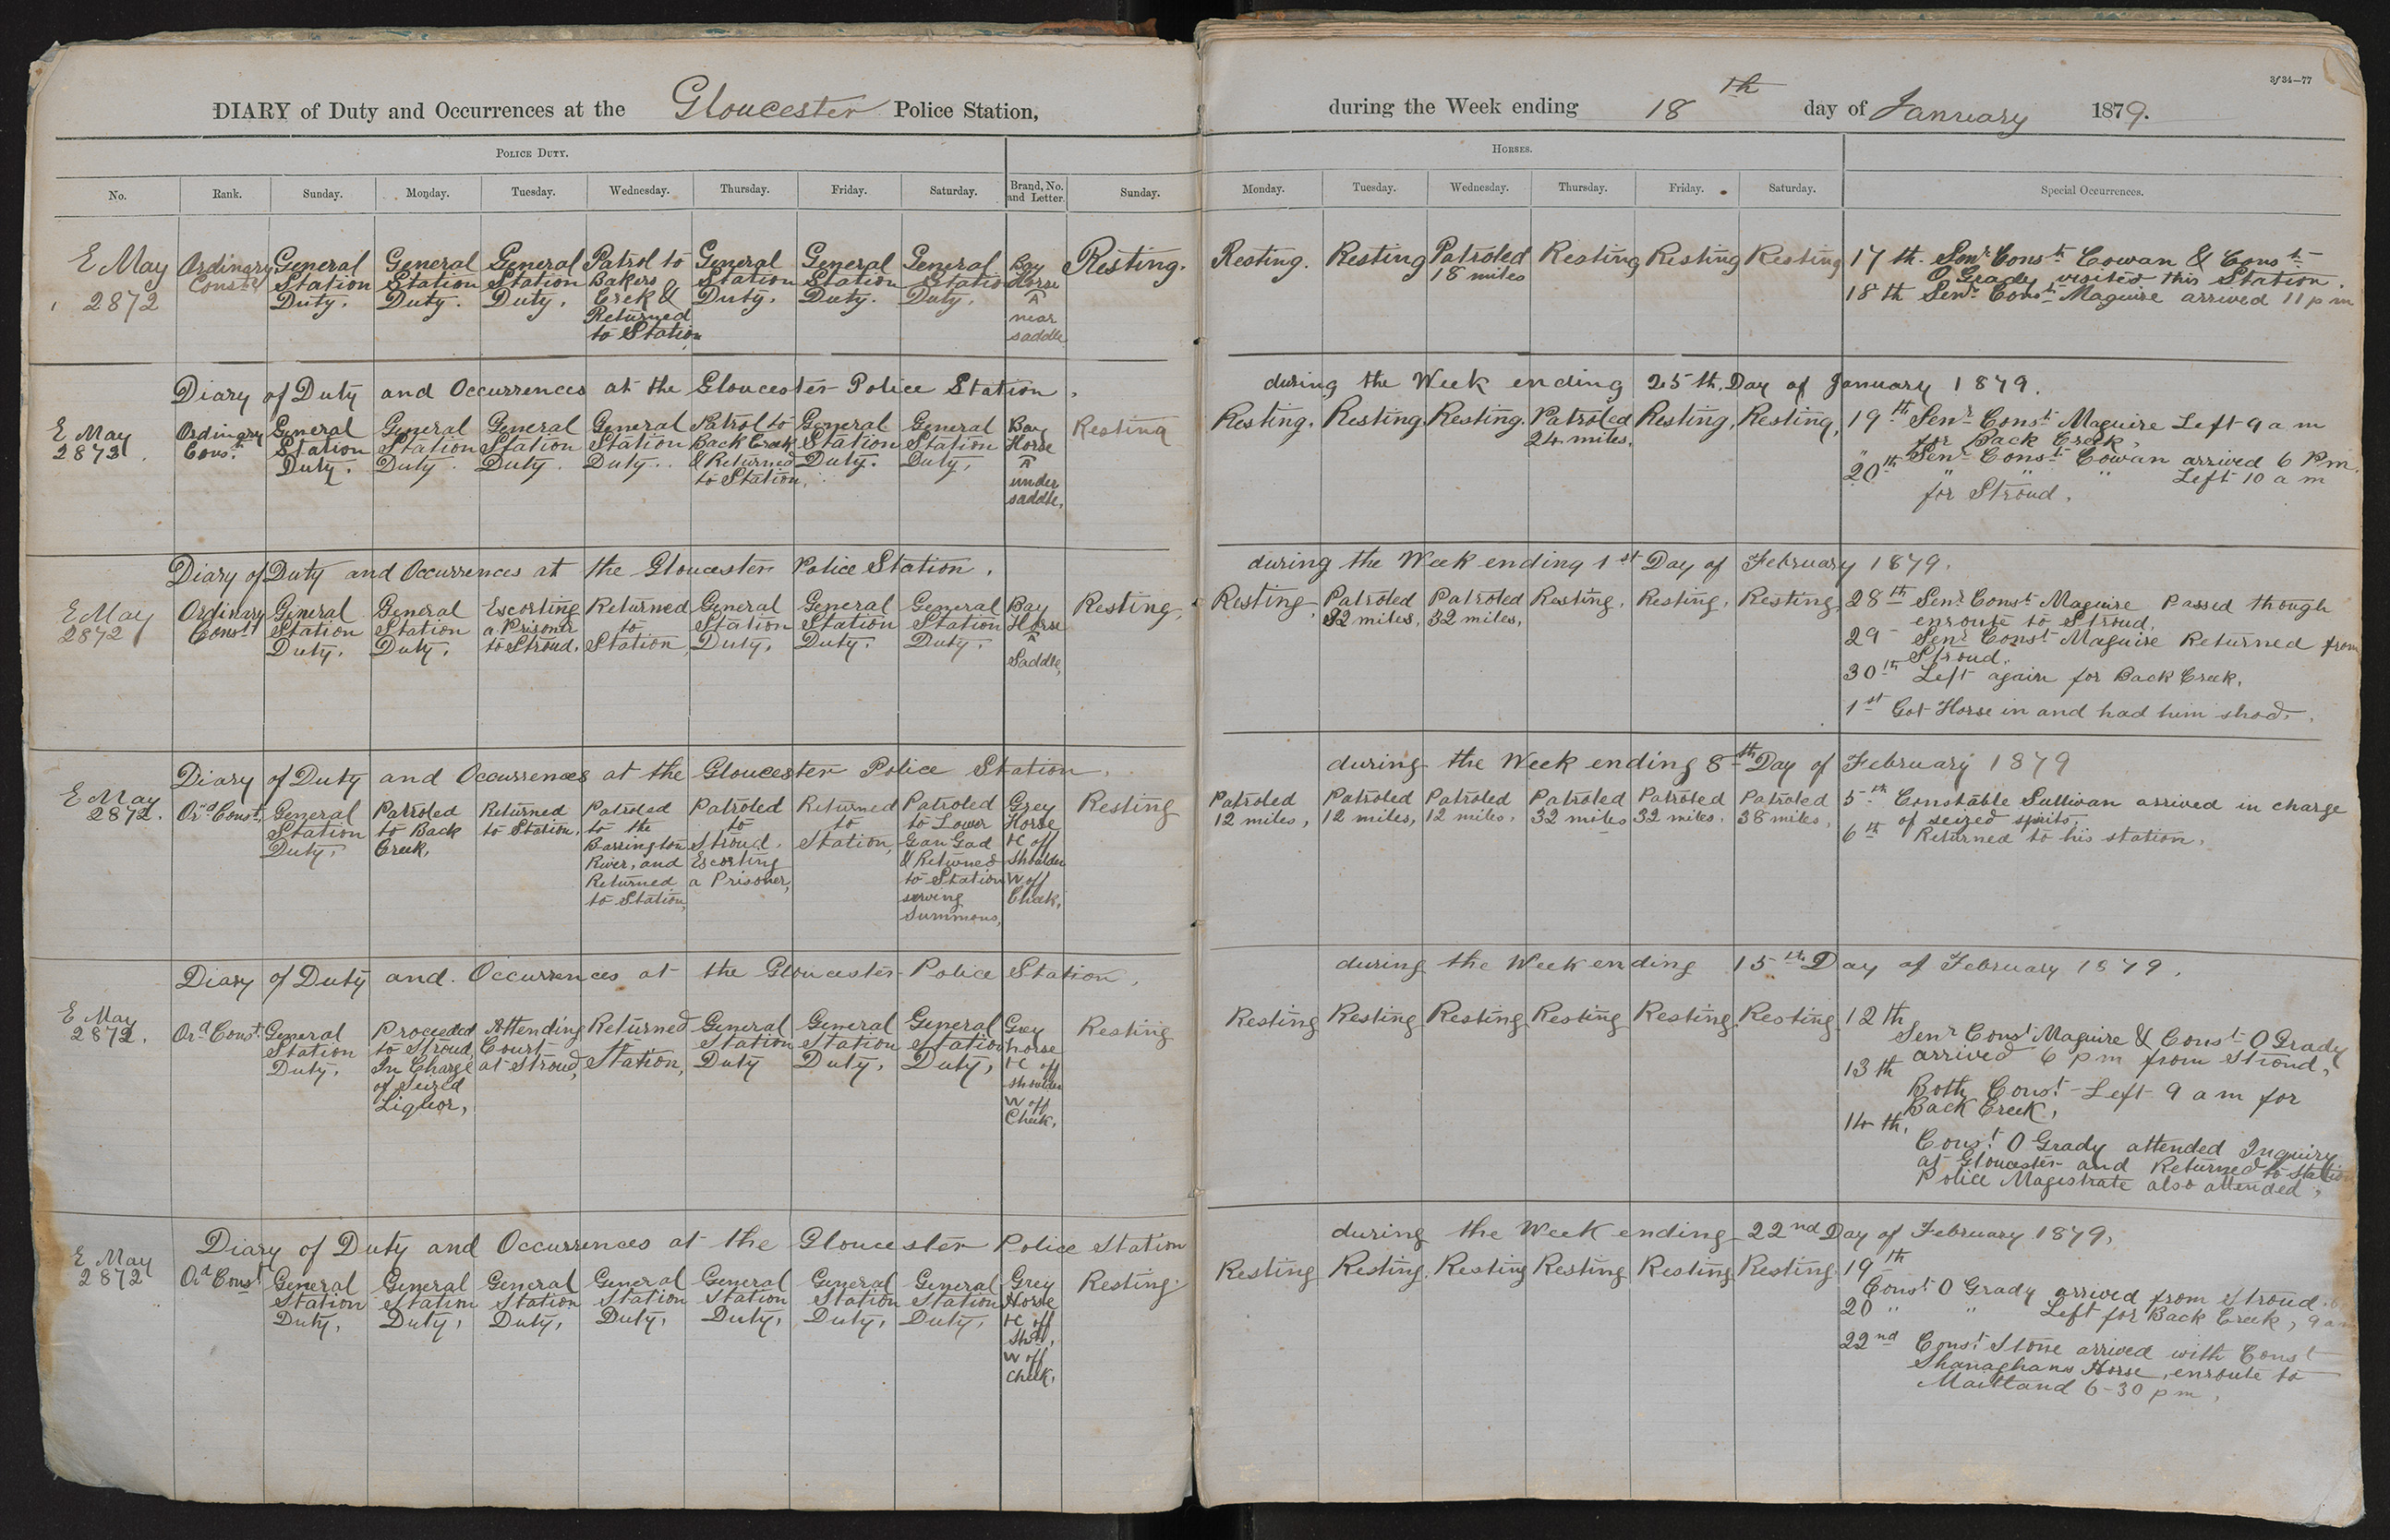 Diary of duty and occurrences at the Gloucester Police Station during the week ending the 18th day of January 1879